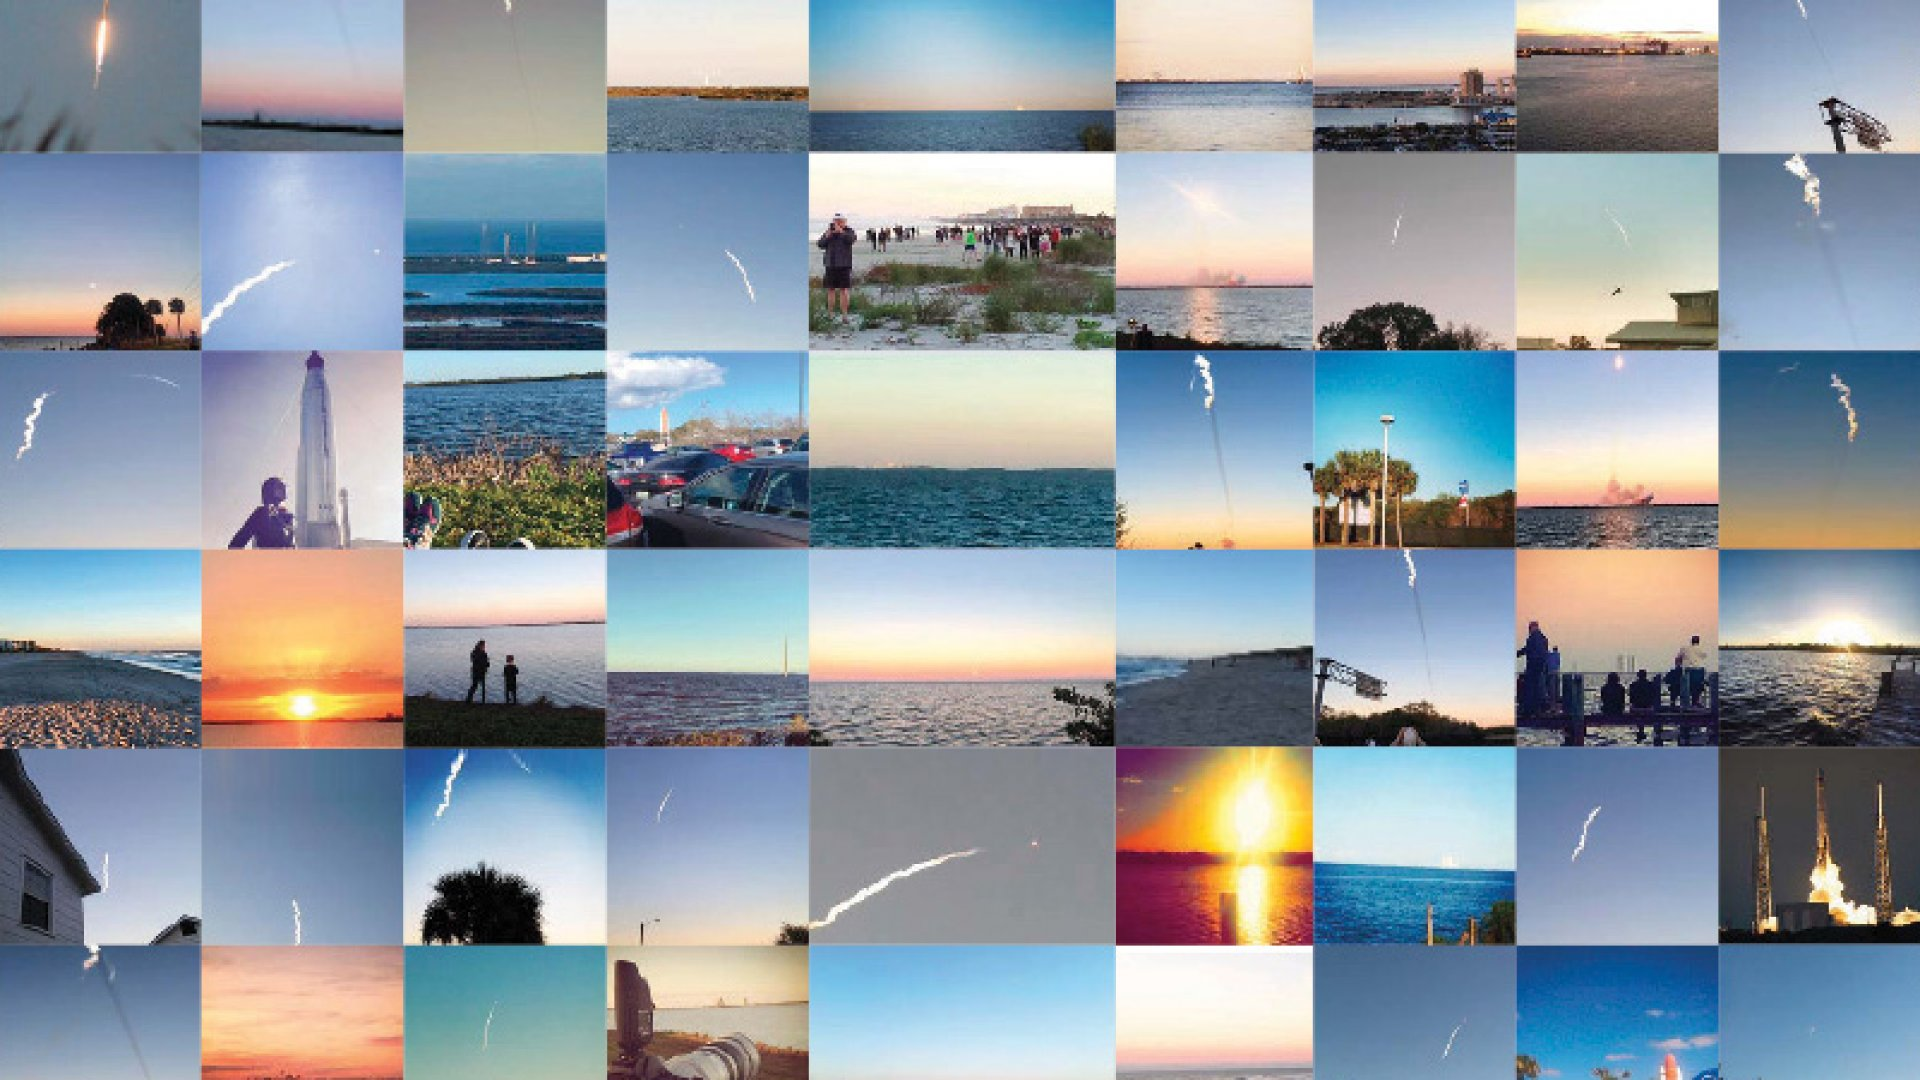 Photos Banjo aggregated from several social media networks during the launch of SpaceX's Falcon 9 rocket. All images were drawn from social media timestamped between 5 and 6:53 p.m. on February 11, and posted within a 15-mile radius of the launch site at Cape Canaveral, Florida.